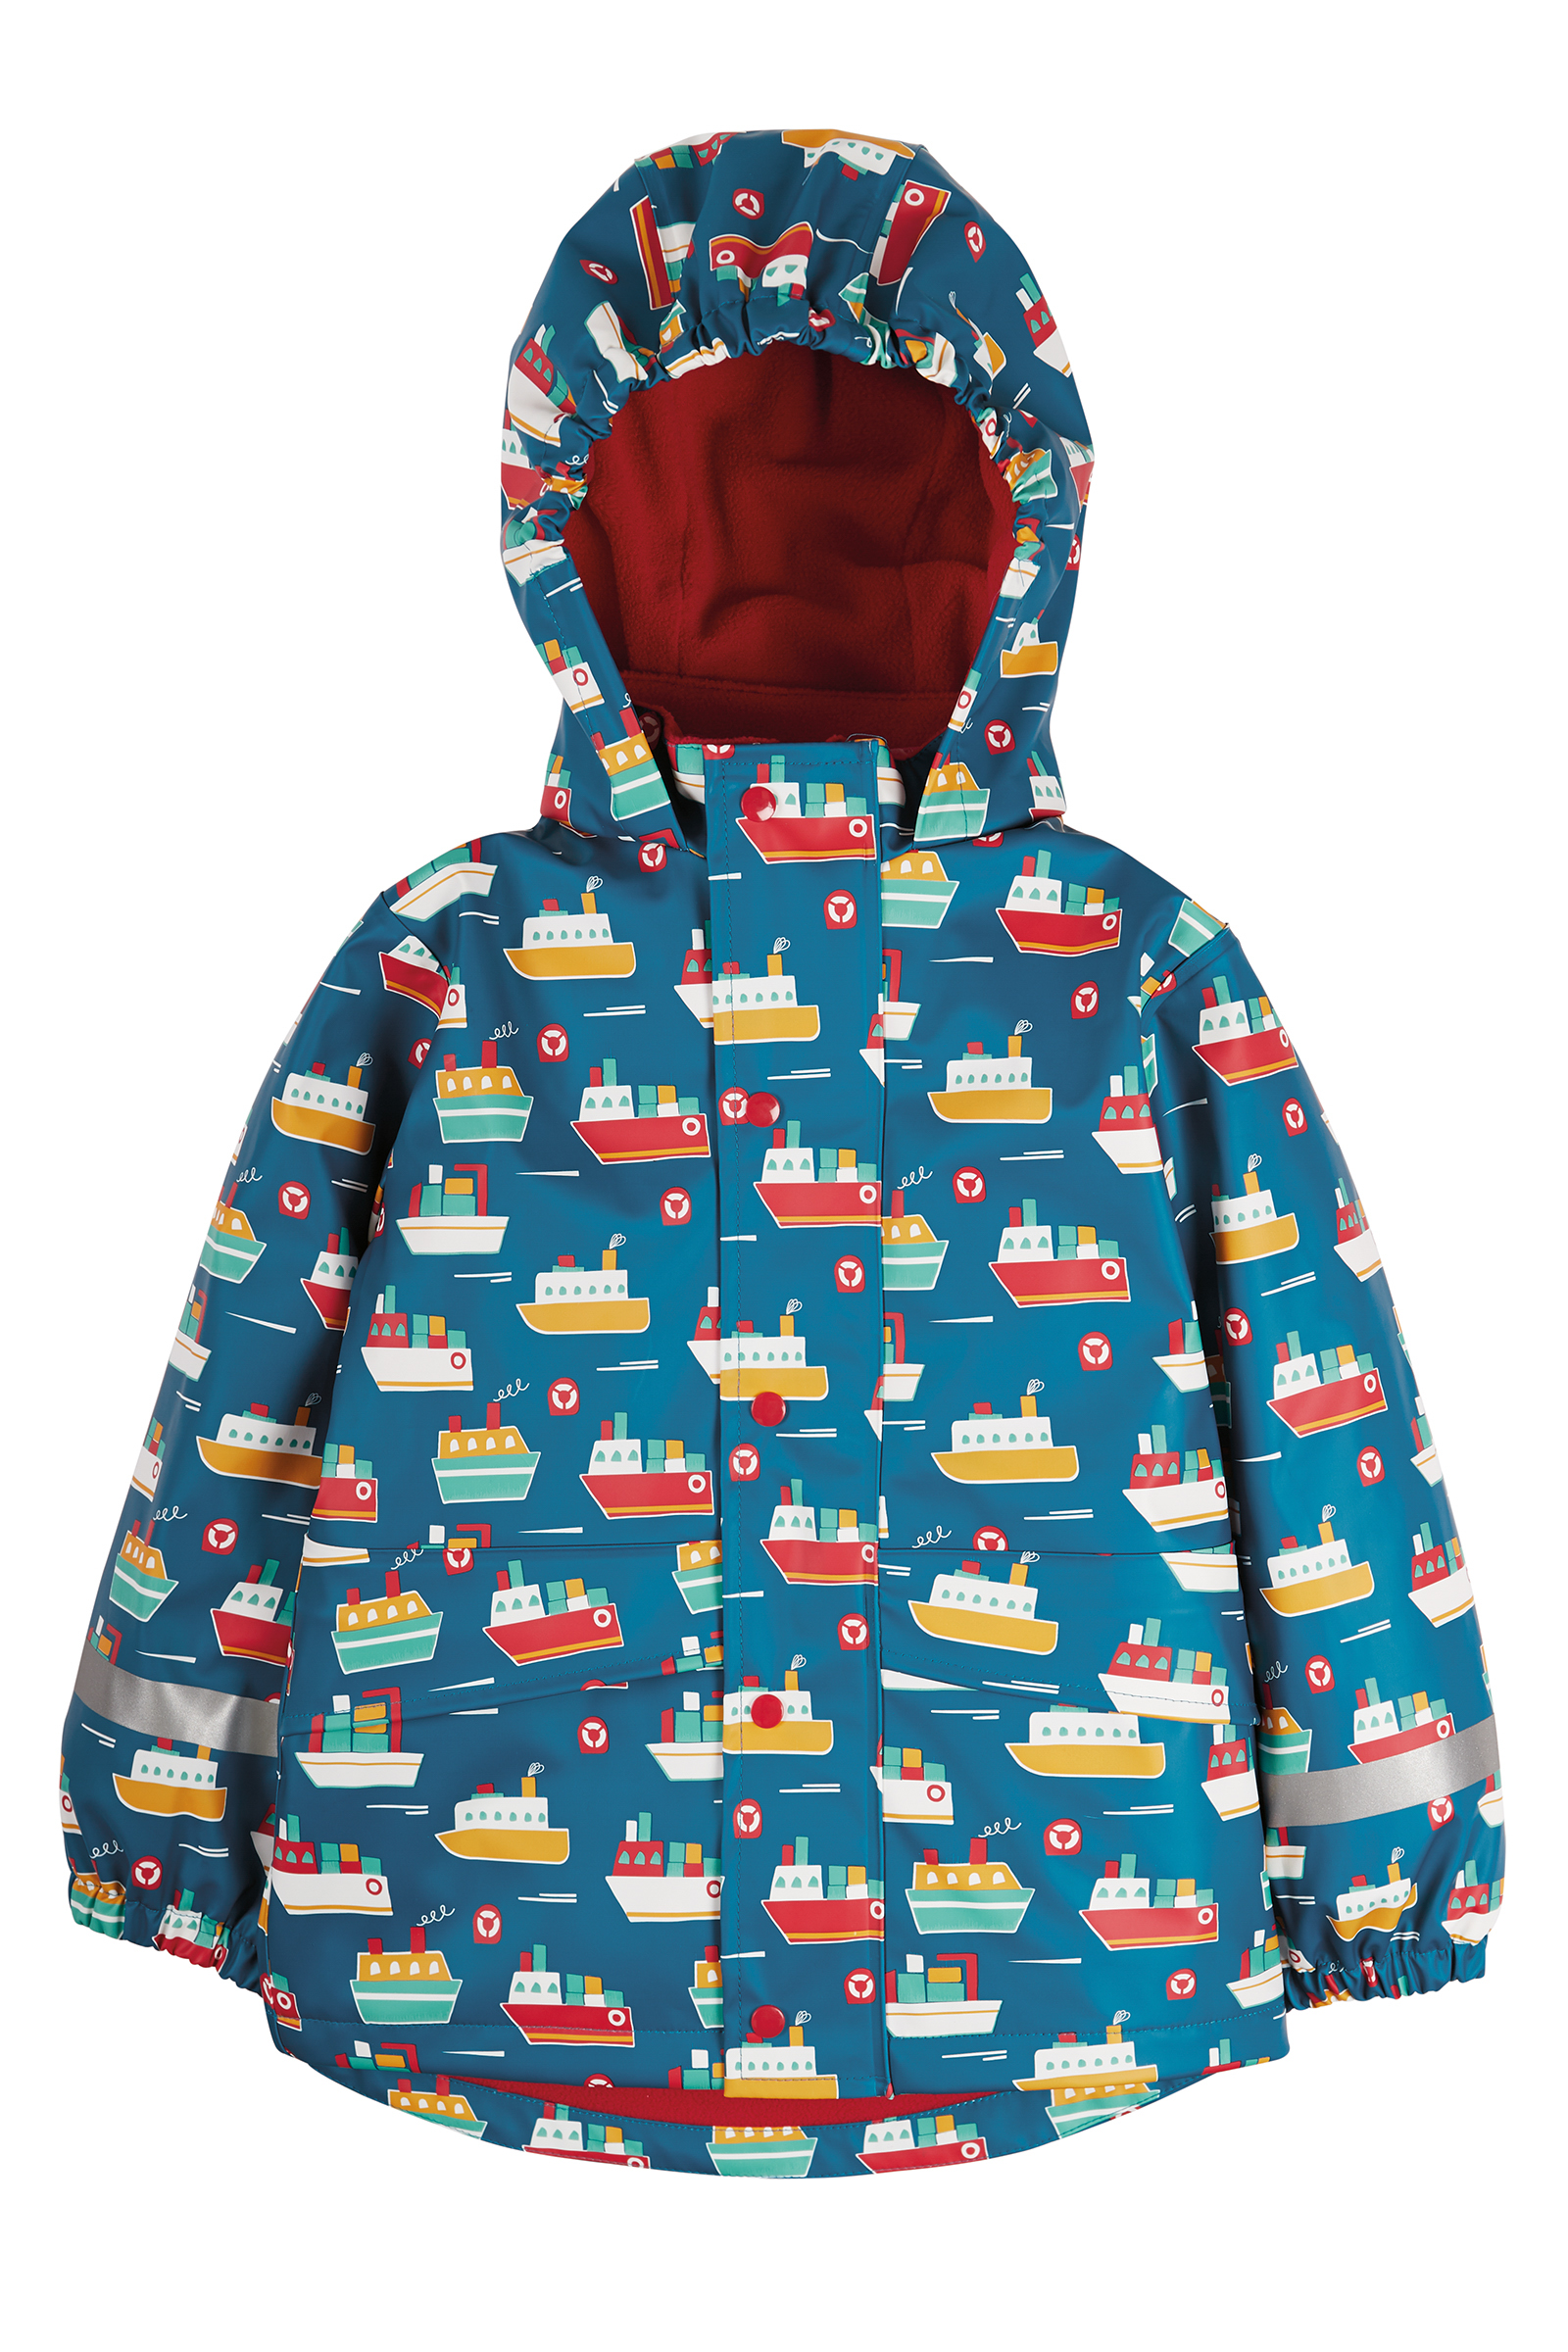 Frugi - Puddle Buster Coat, Sail The Seas